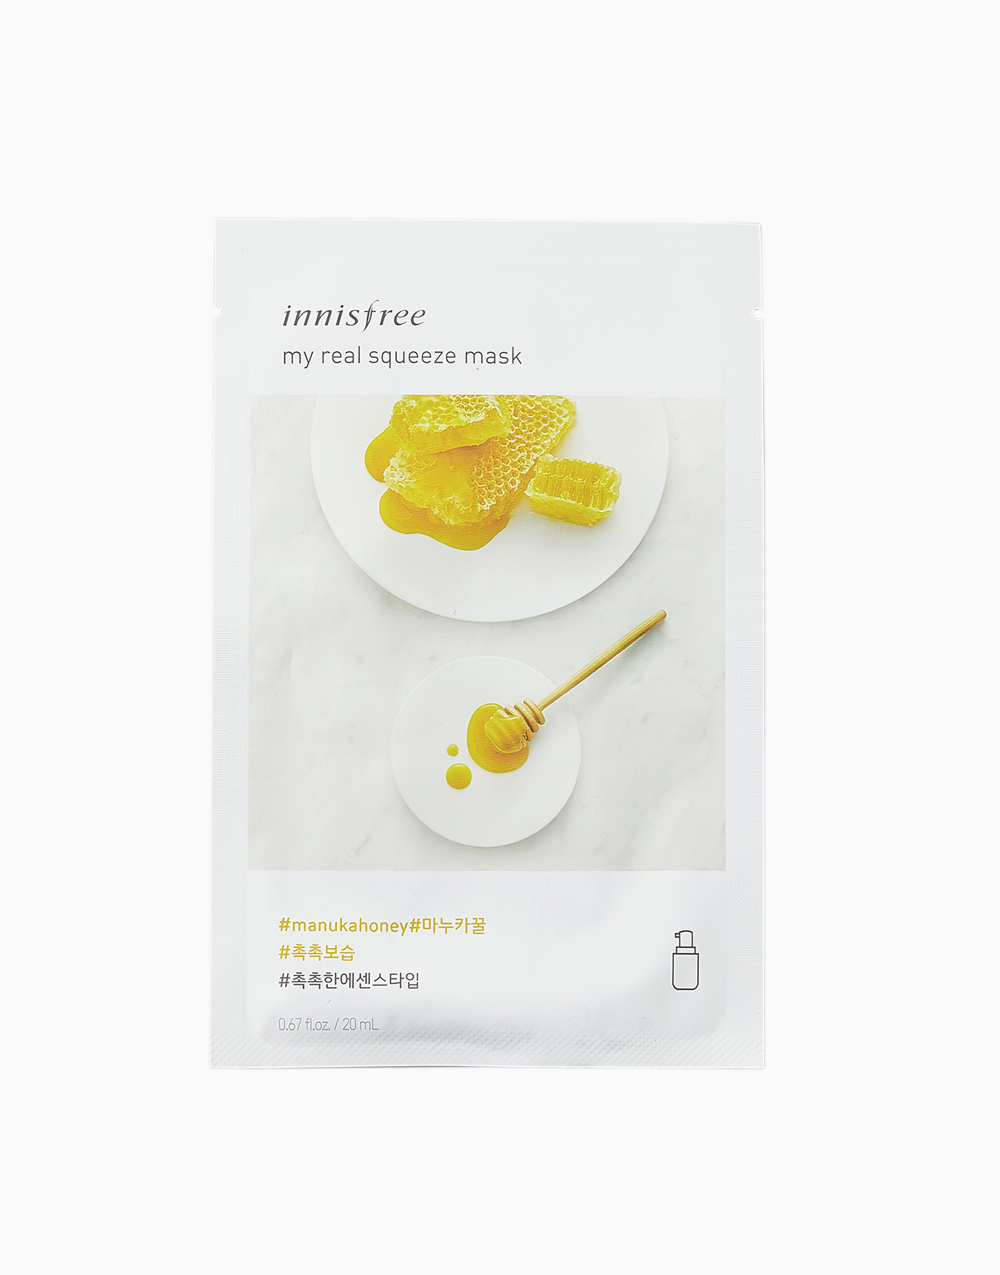 My Real Squeeze Manuka Honey Mask by Innisfree